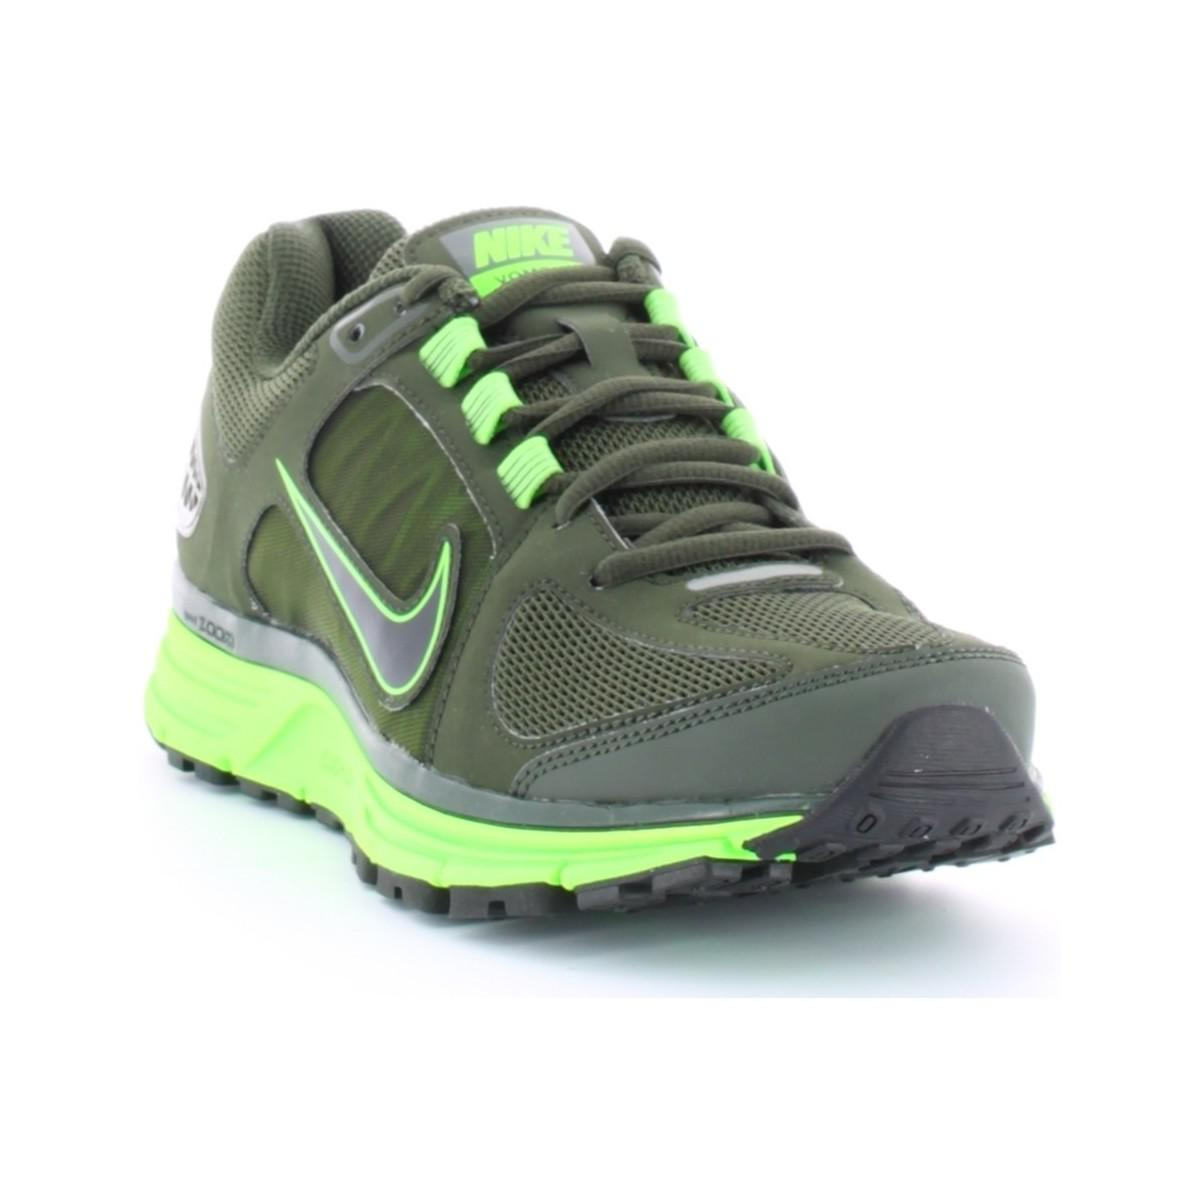 Nike 511488 Sport Shoes Man Verde Men's Trainers In Green for Men